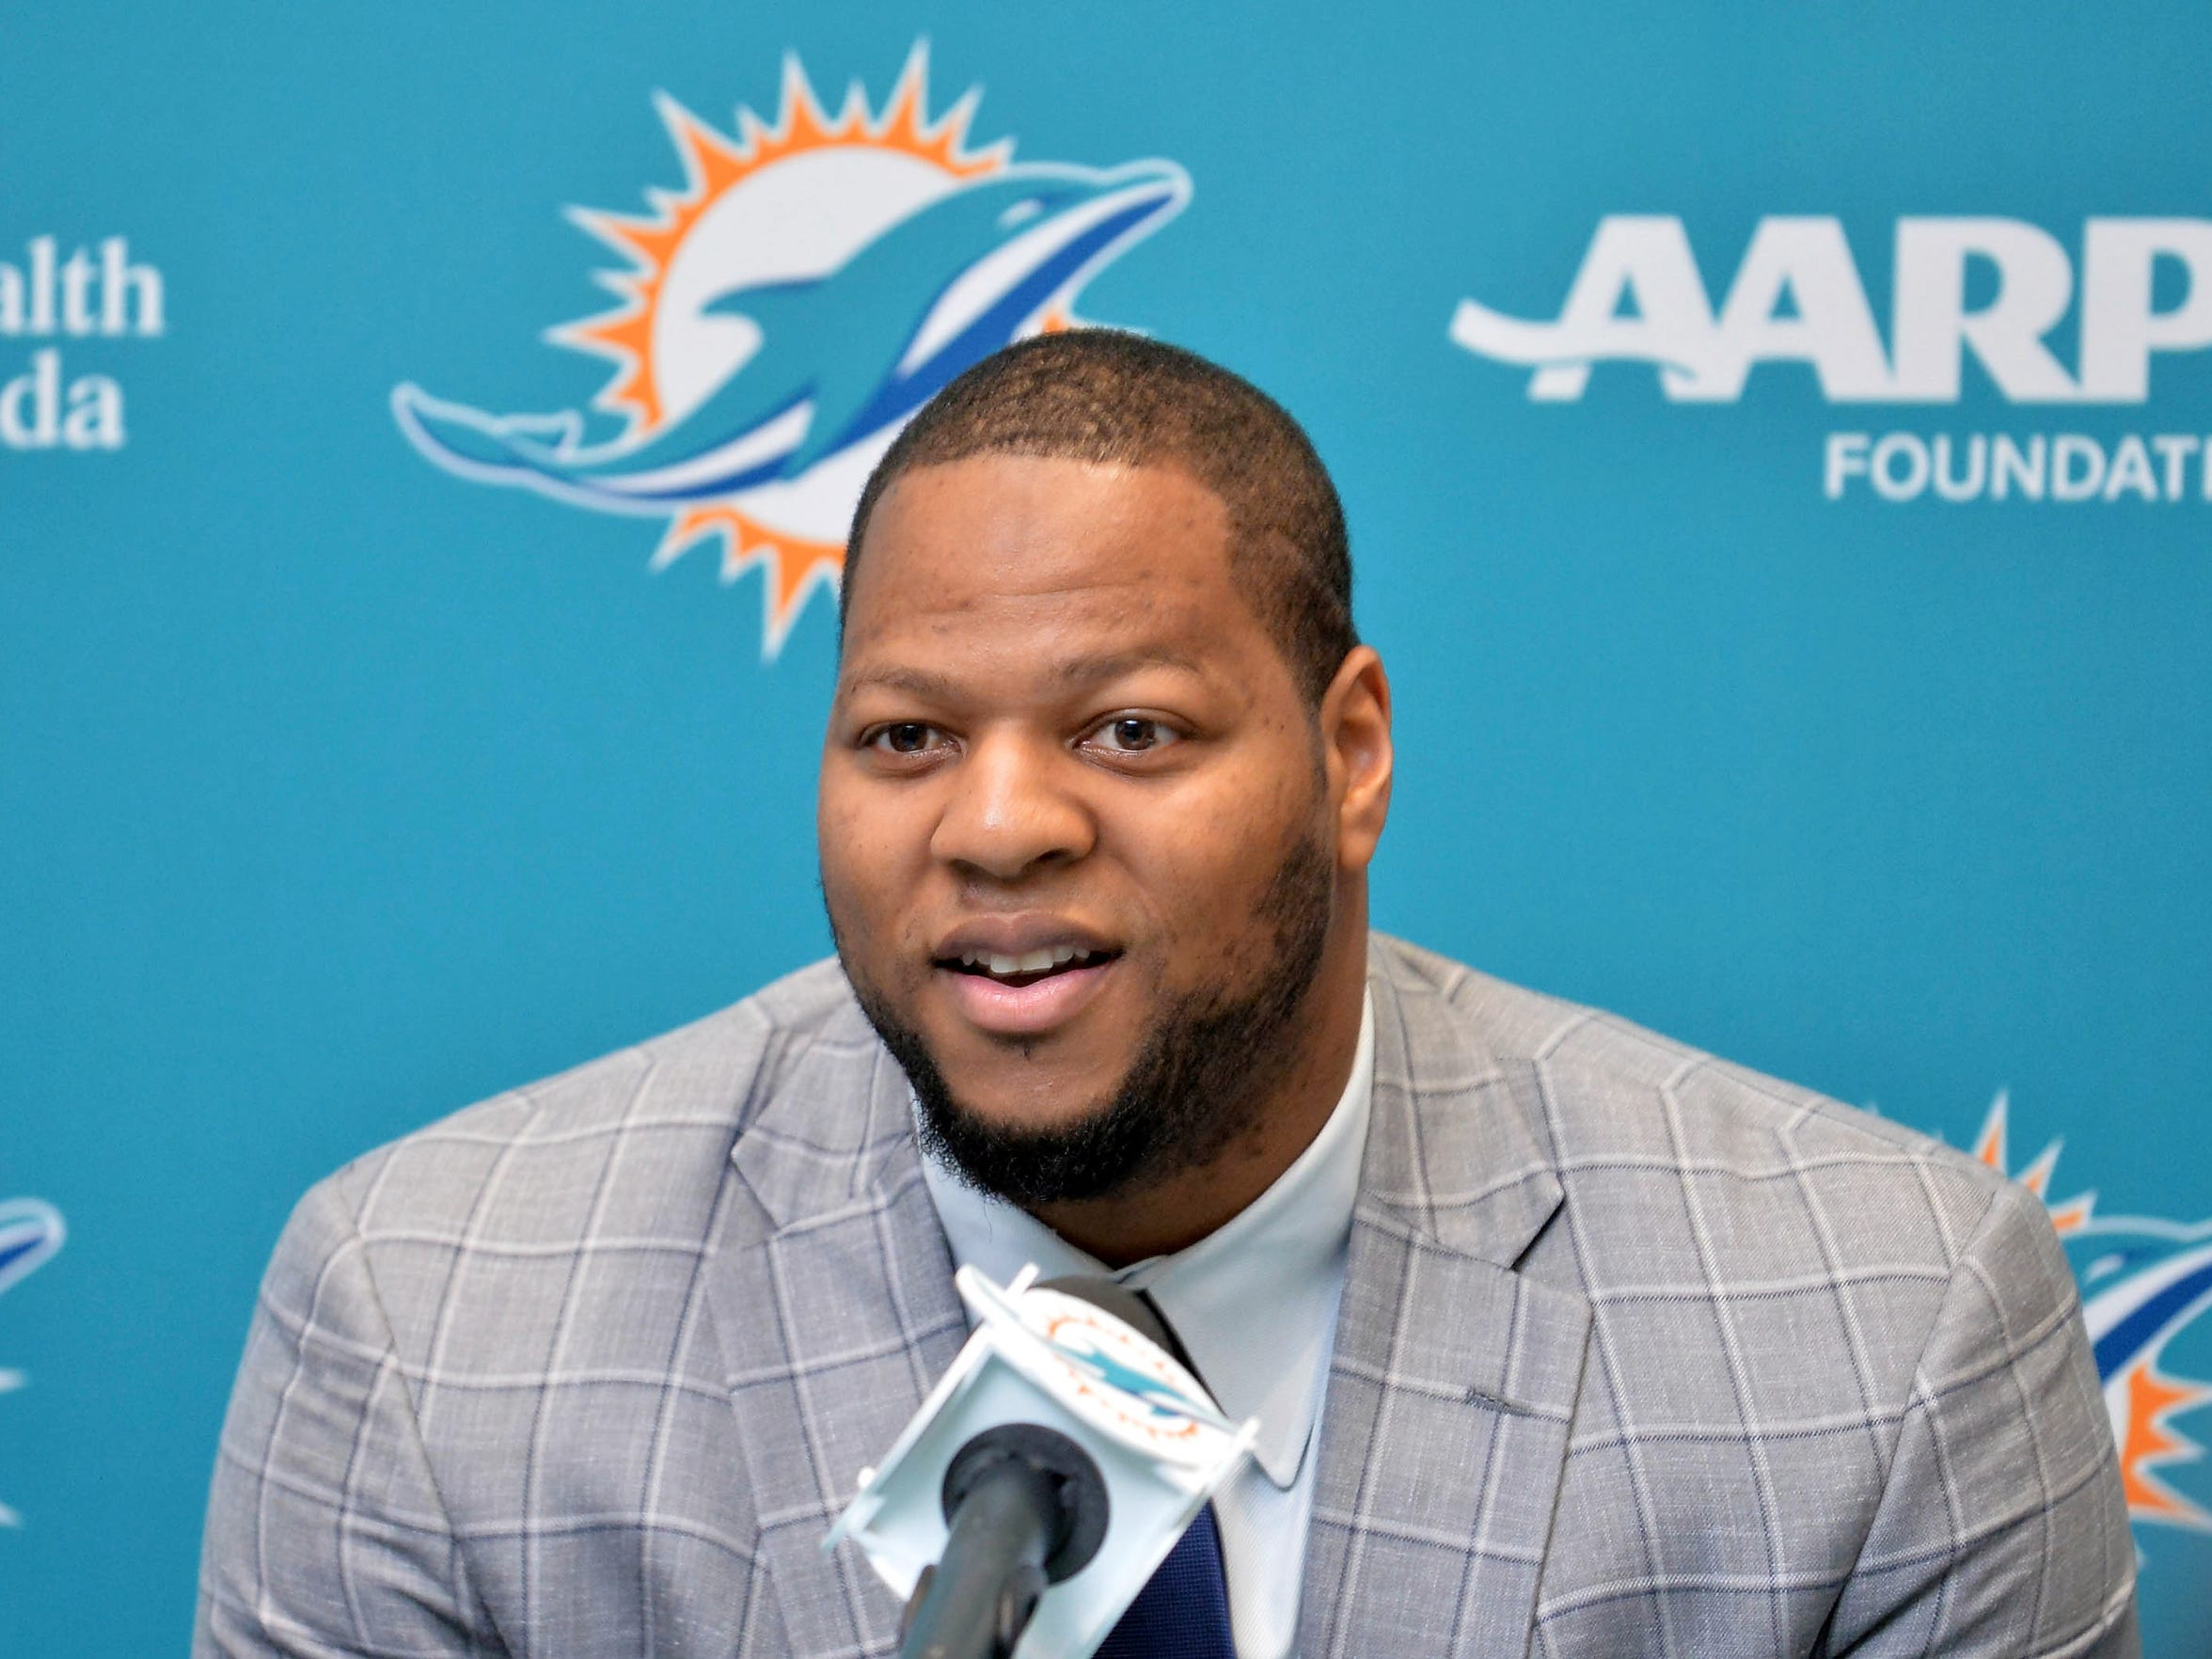 Ndamukong Suh signed a $114-million deal with the Miami